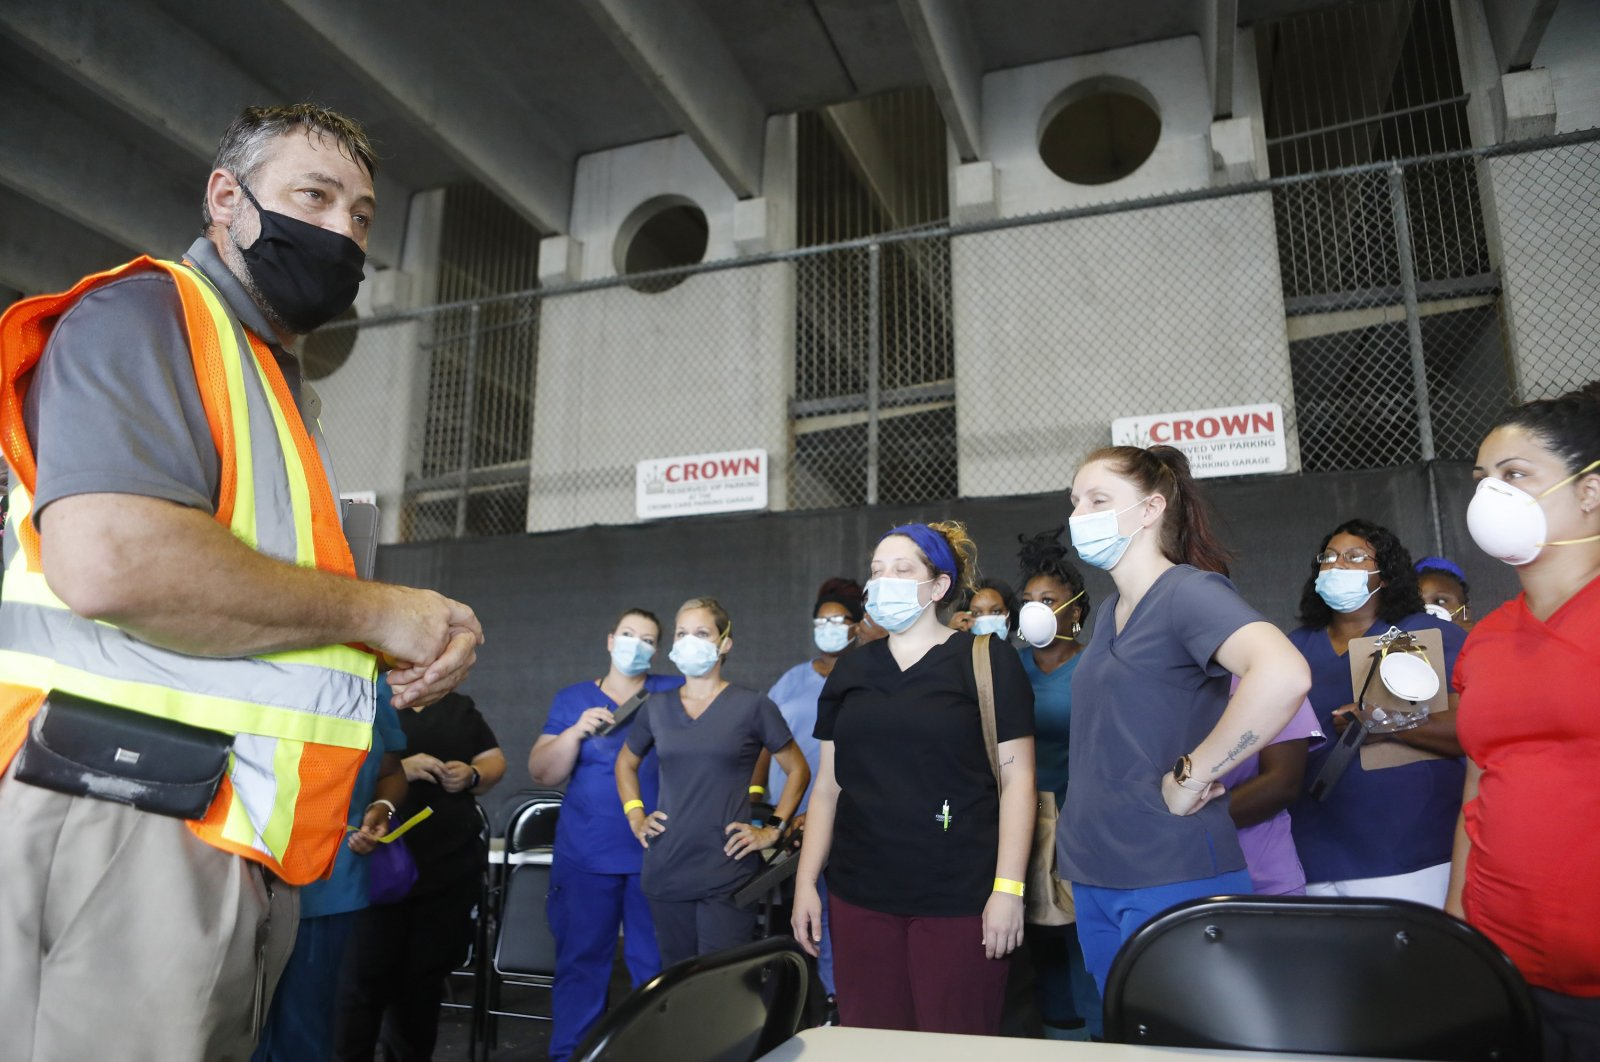 Health care workers meet before COVID-19 drive-thru testing begins at the Duke Energy for the Arts Mahaffey Theater, in St. Petersburg, Florida, U.S., July 8, 2020. (AFP Photo)